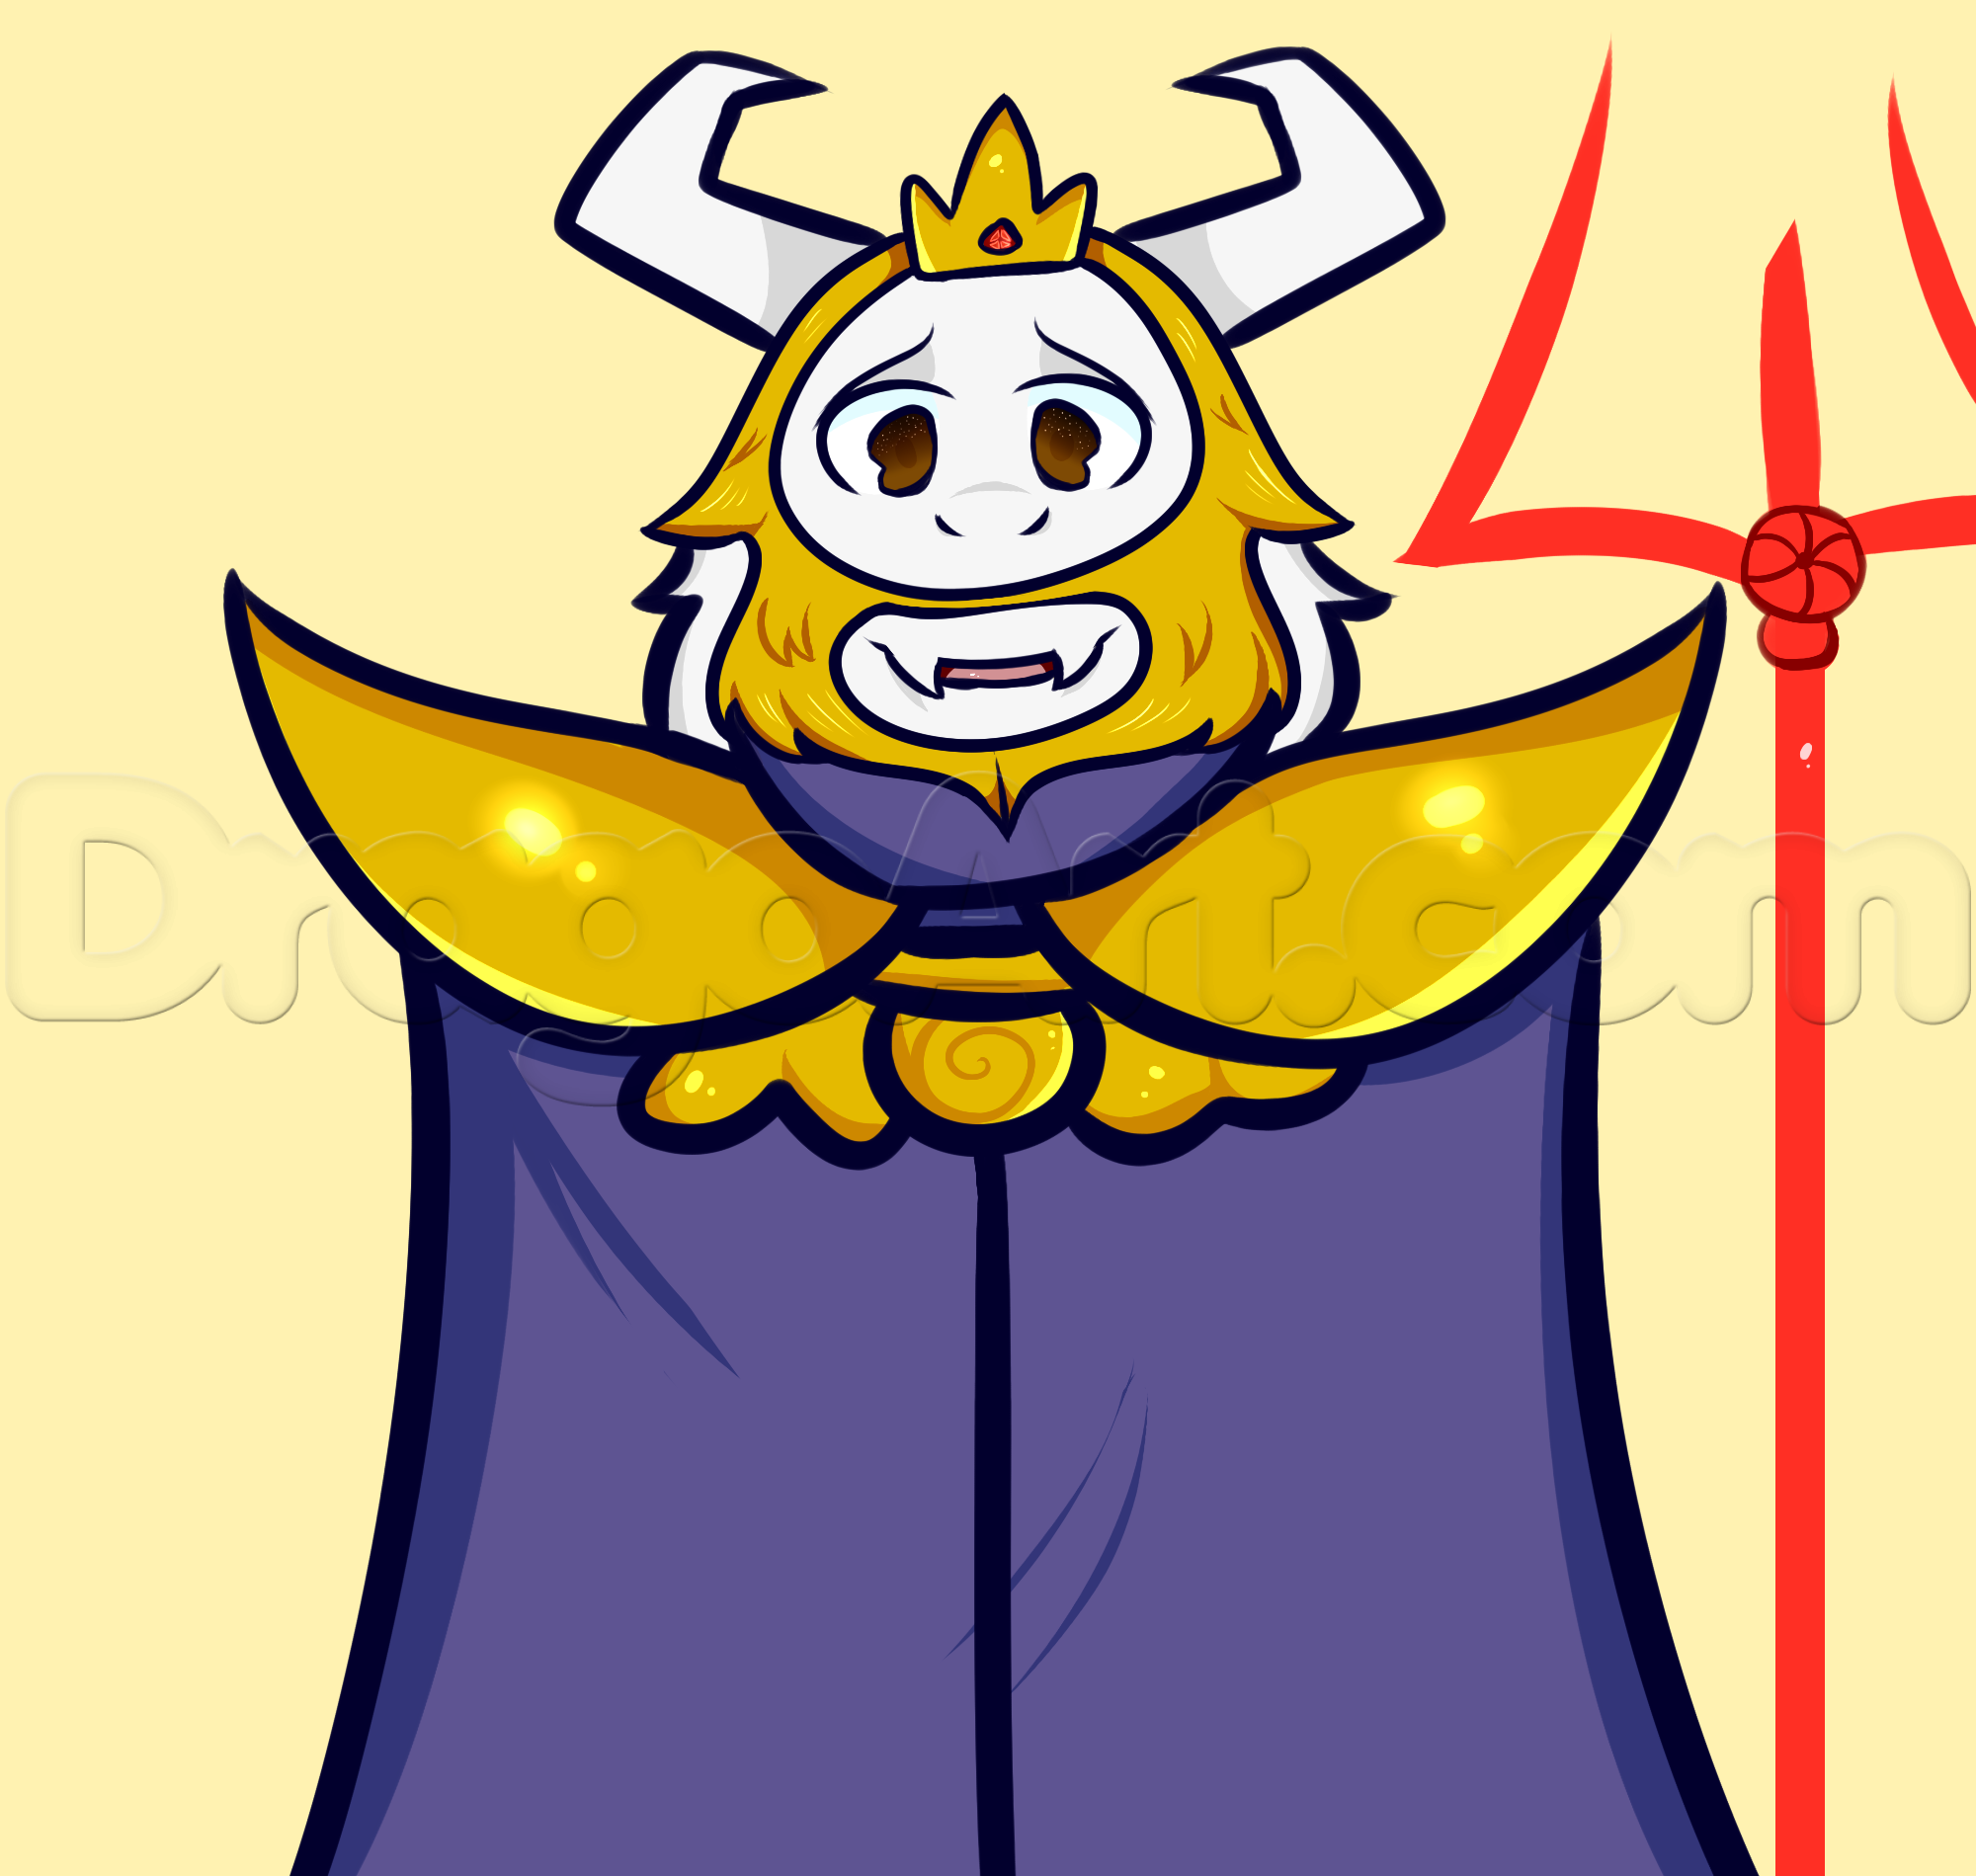 2000x1899 How To Draw Asgore From Undertale, Step